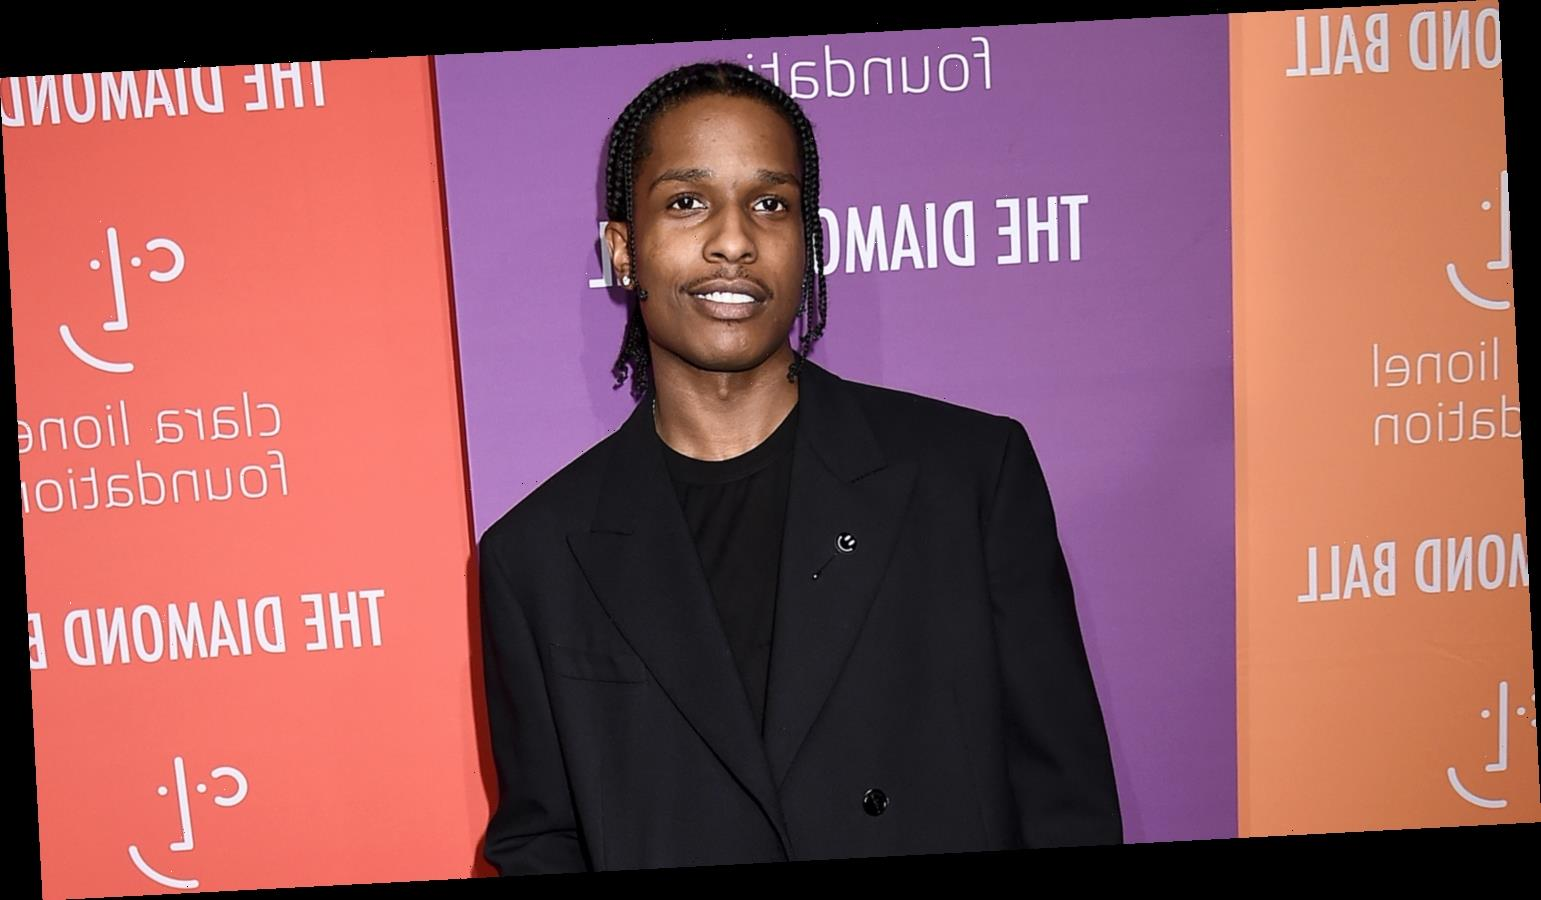 A$AP Rocky is Designing Uniforms for Swedish Prisons